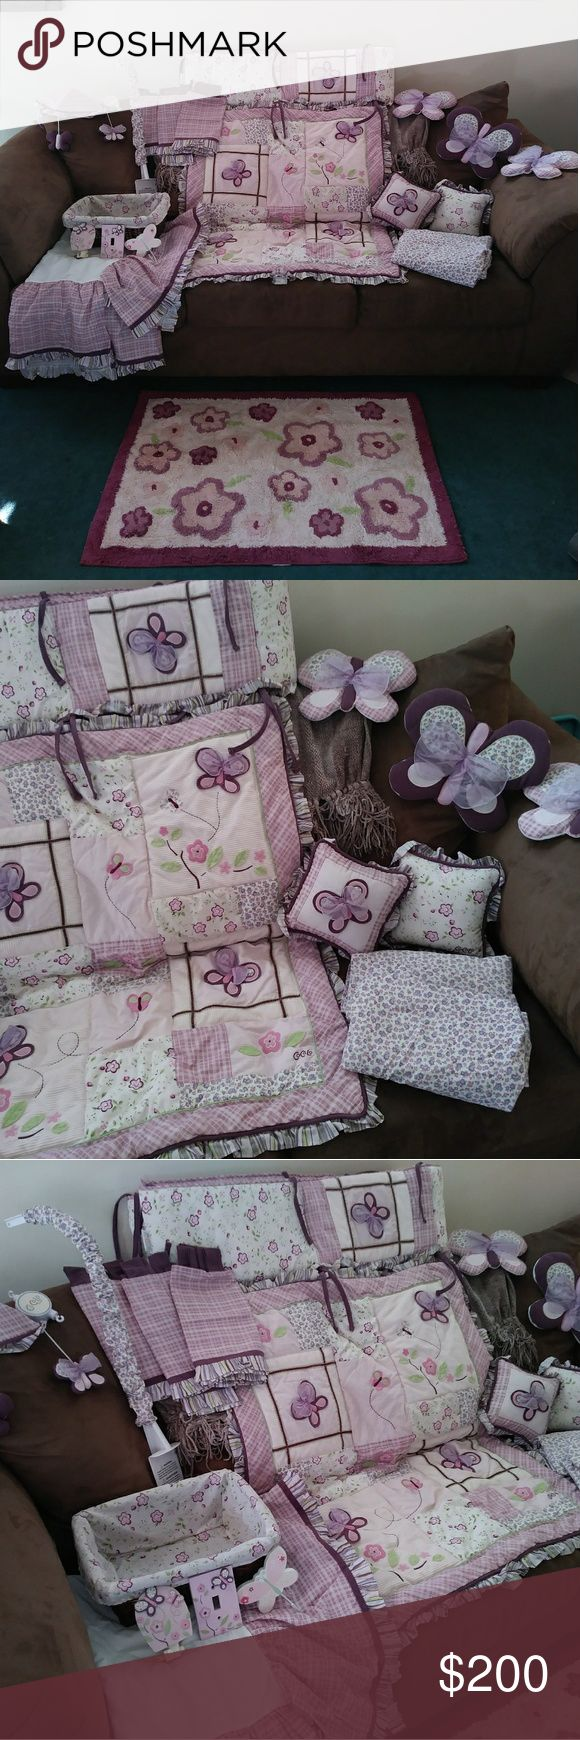 Baby girl butterfly crib bedding & accessories 16 piece bedroom/crib set. Comes with quilt (2) crib sheets, crib skirt, matching basket, (2) decorative pillows, (3) butterfly wall decorations, (3) window valances, small area rug, musical mobile, crib bumper, light switch cover & night light. Everything in perfect condition! Cucalo Other